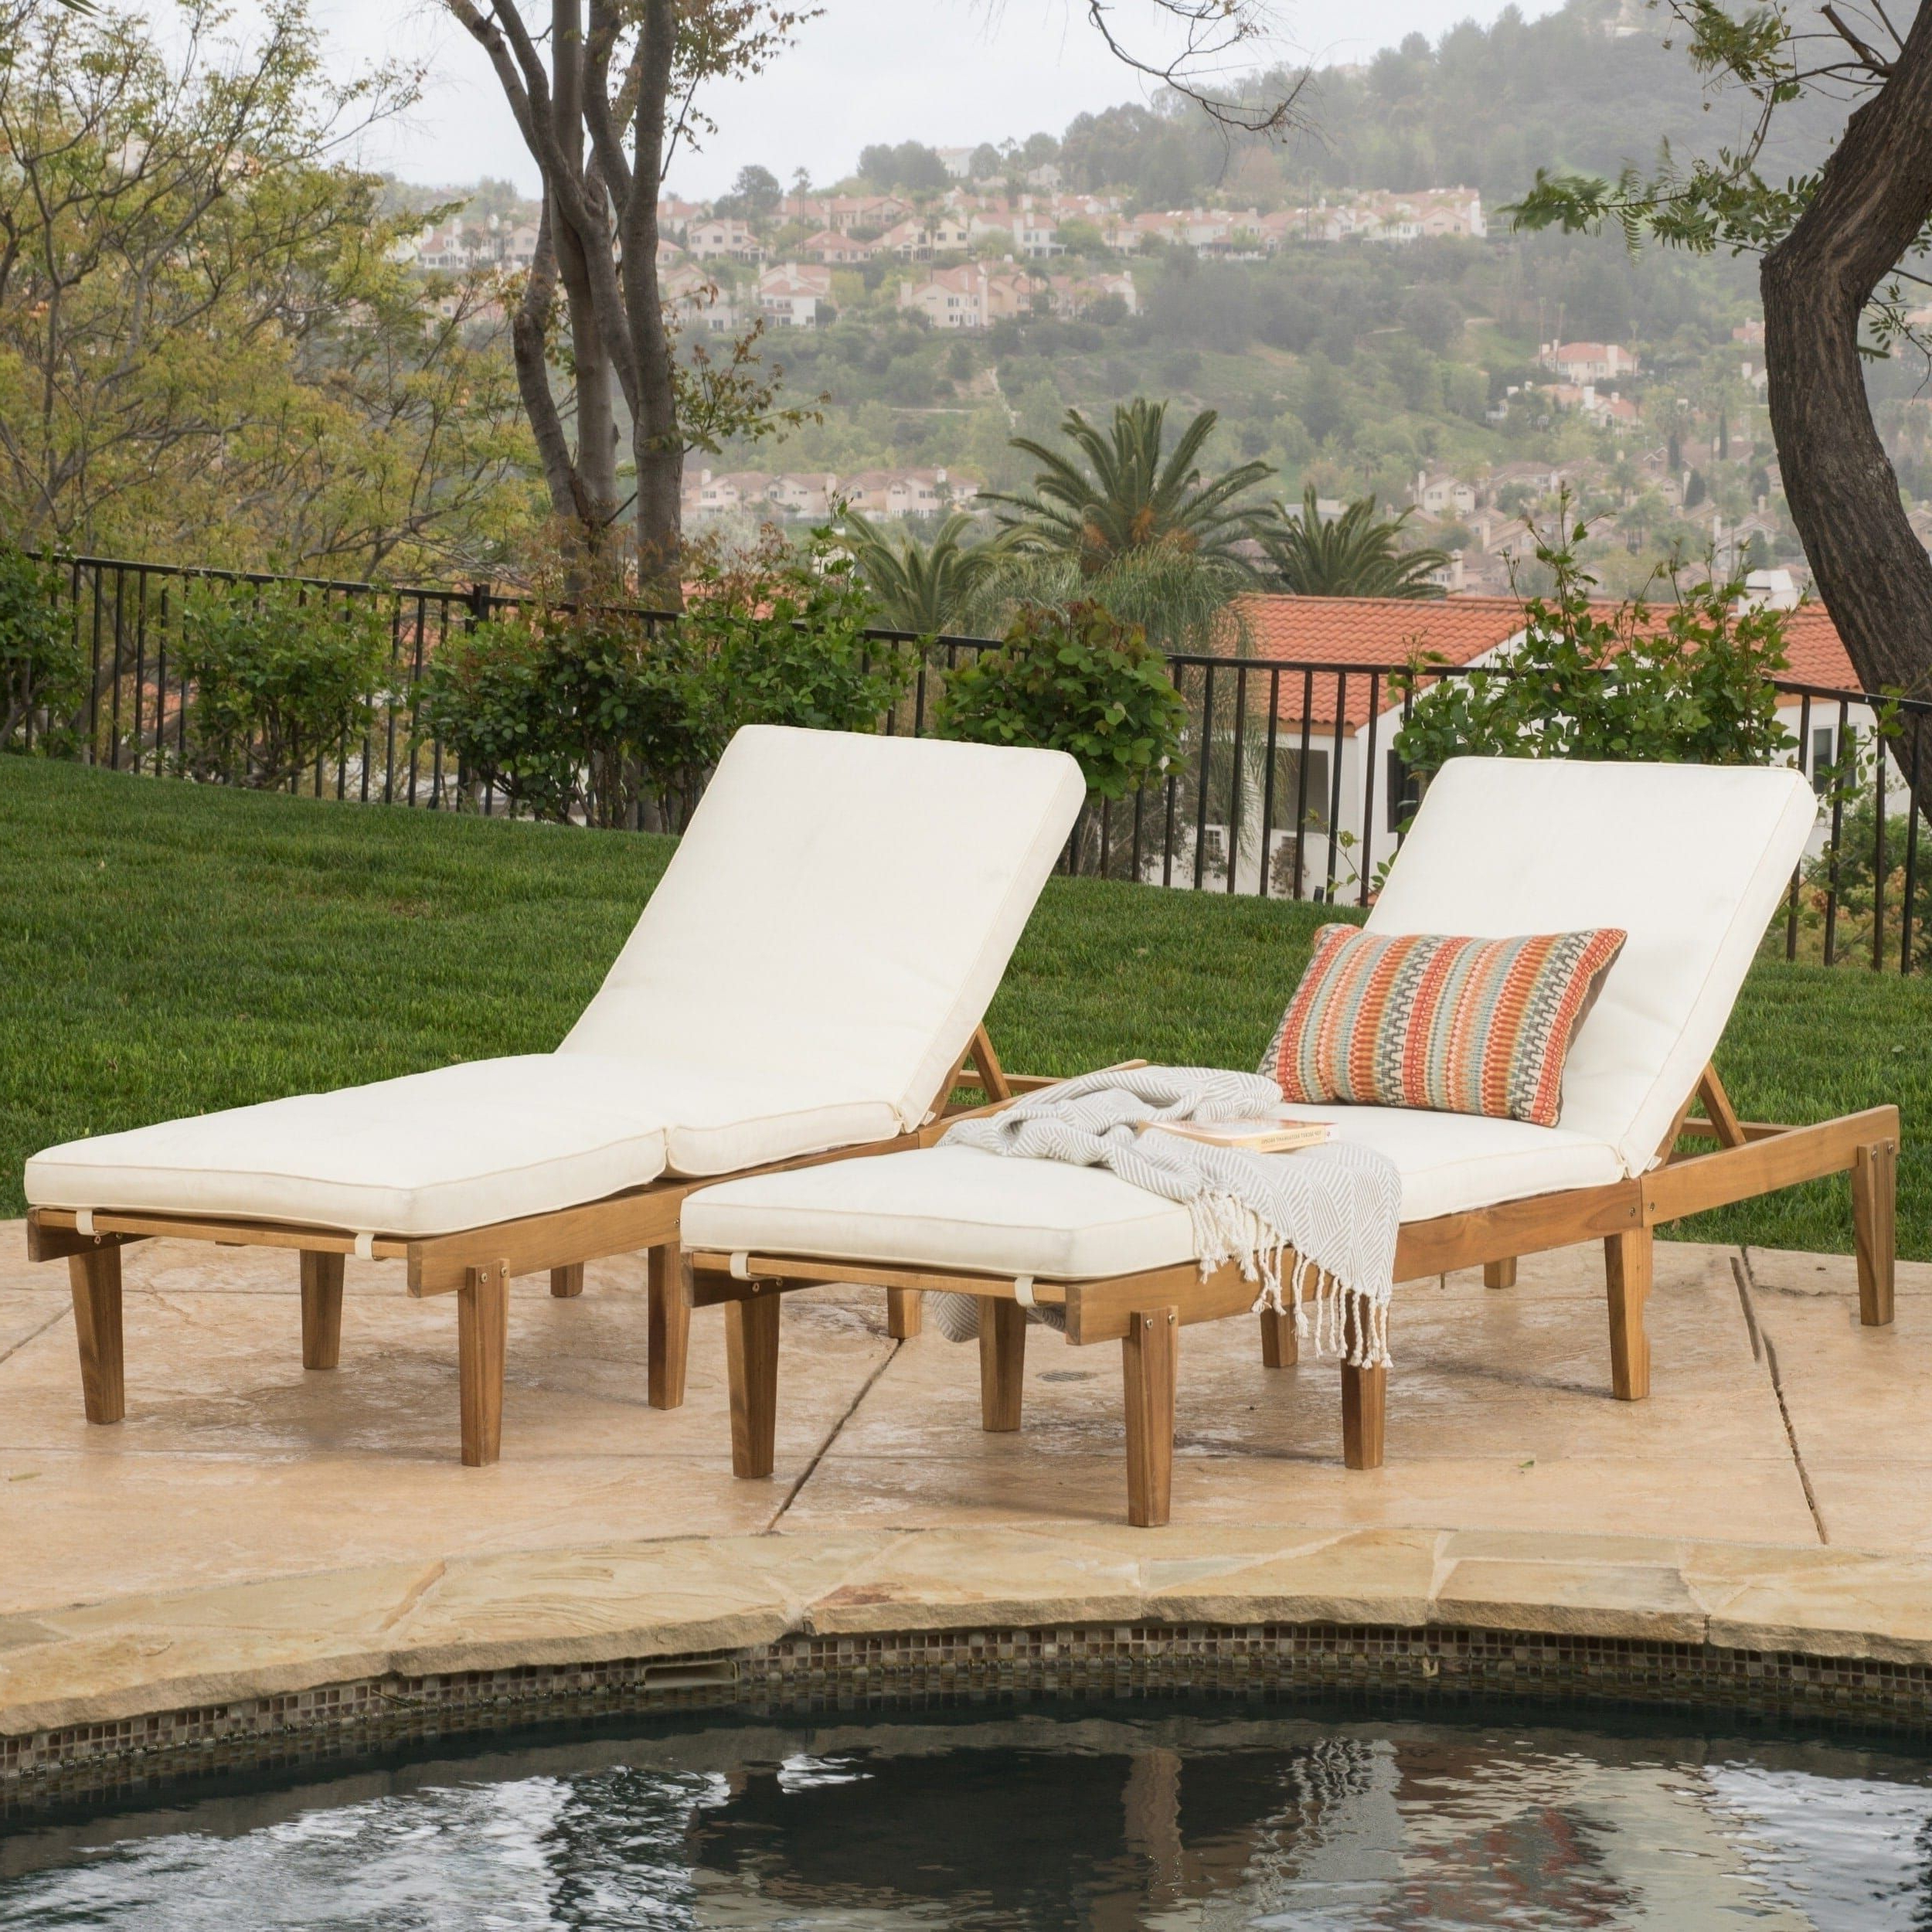 Perla Outdoor Acacia Wood Chaise Lounges Inside Famous Ariana Outdoor Acacia Wood Chaise Lounge With Cushion (Set (View 14 of 25)